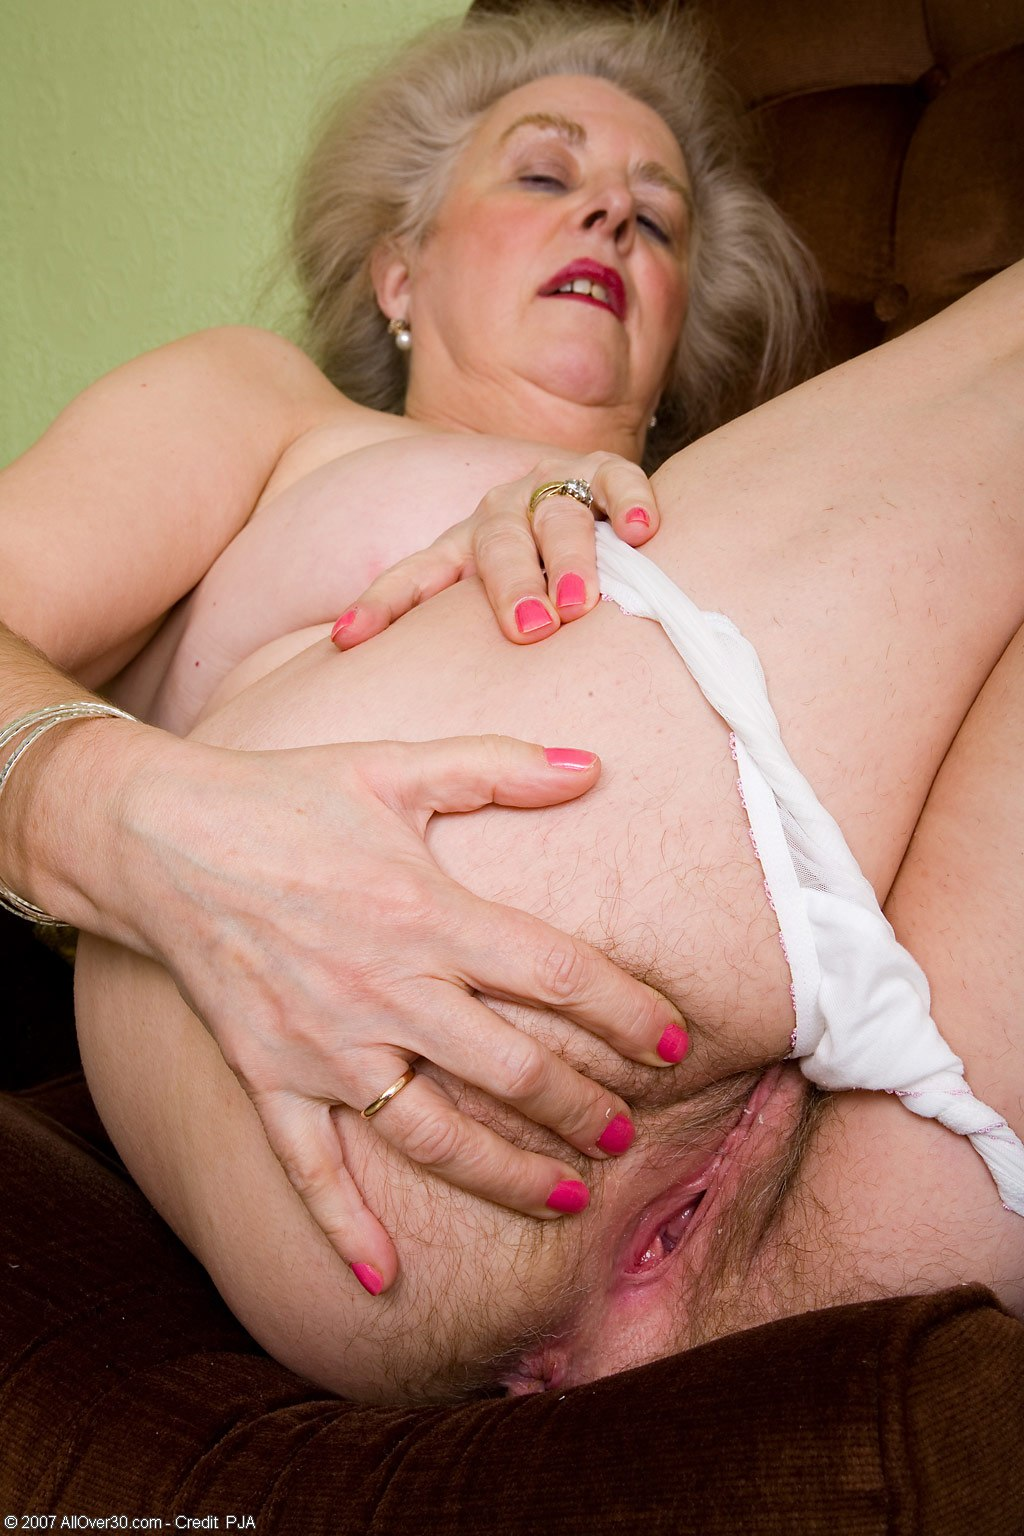 freaky-granny-nudes-sex-with-my-girlfriend